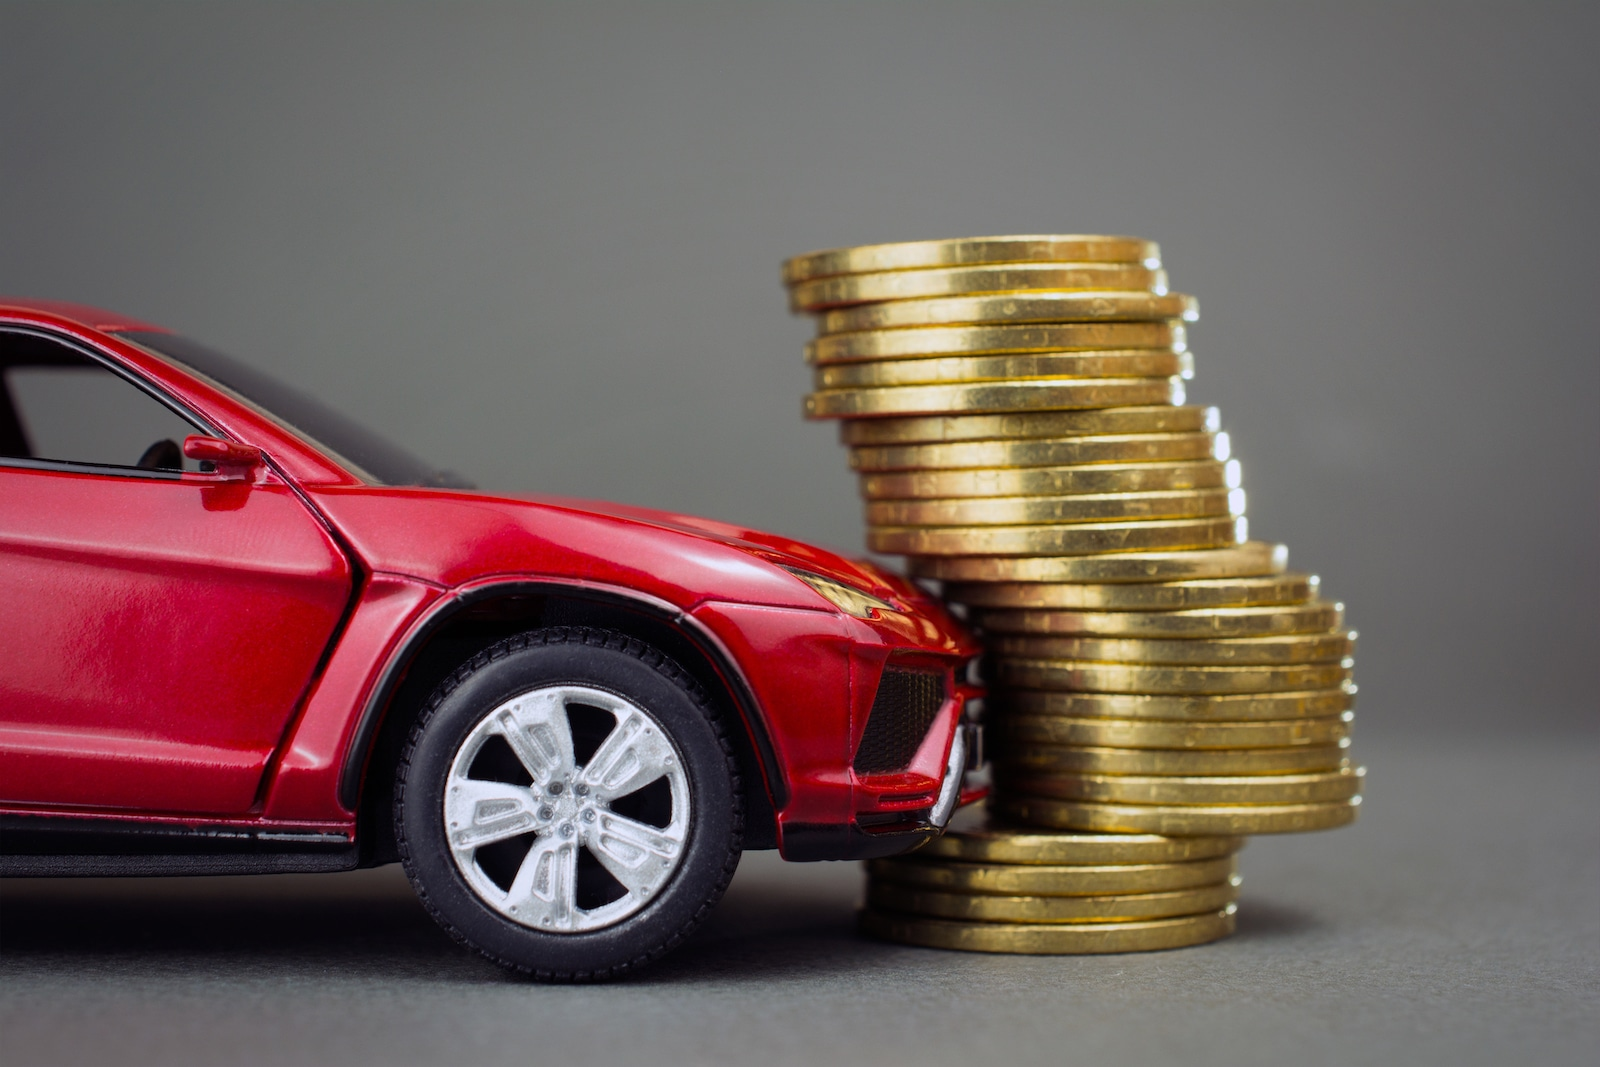 Cheap Car Insurance, No Deposit: How to Get Low-Cost Full Coverage With No Down Payment (2021)